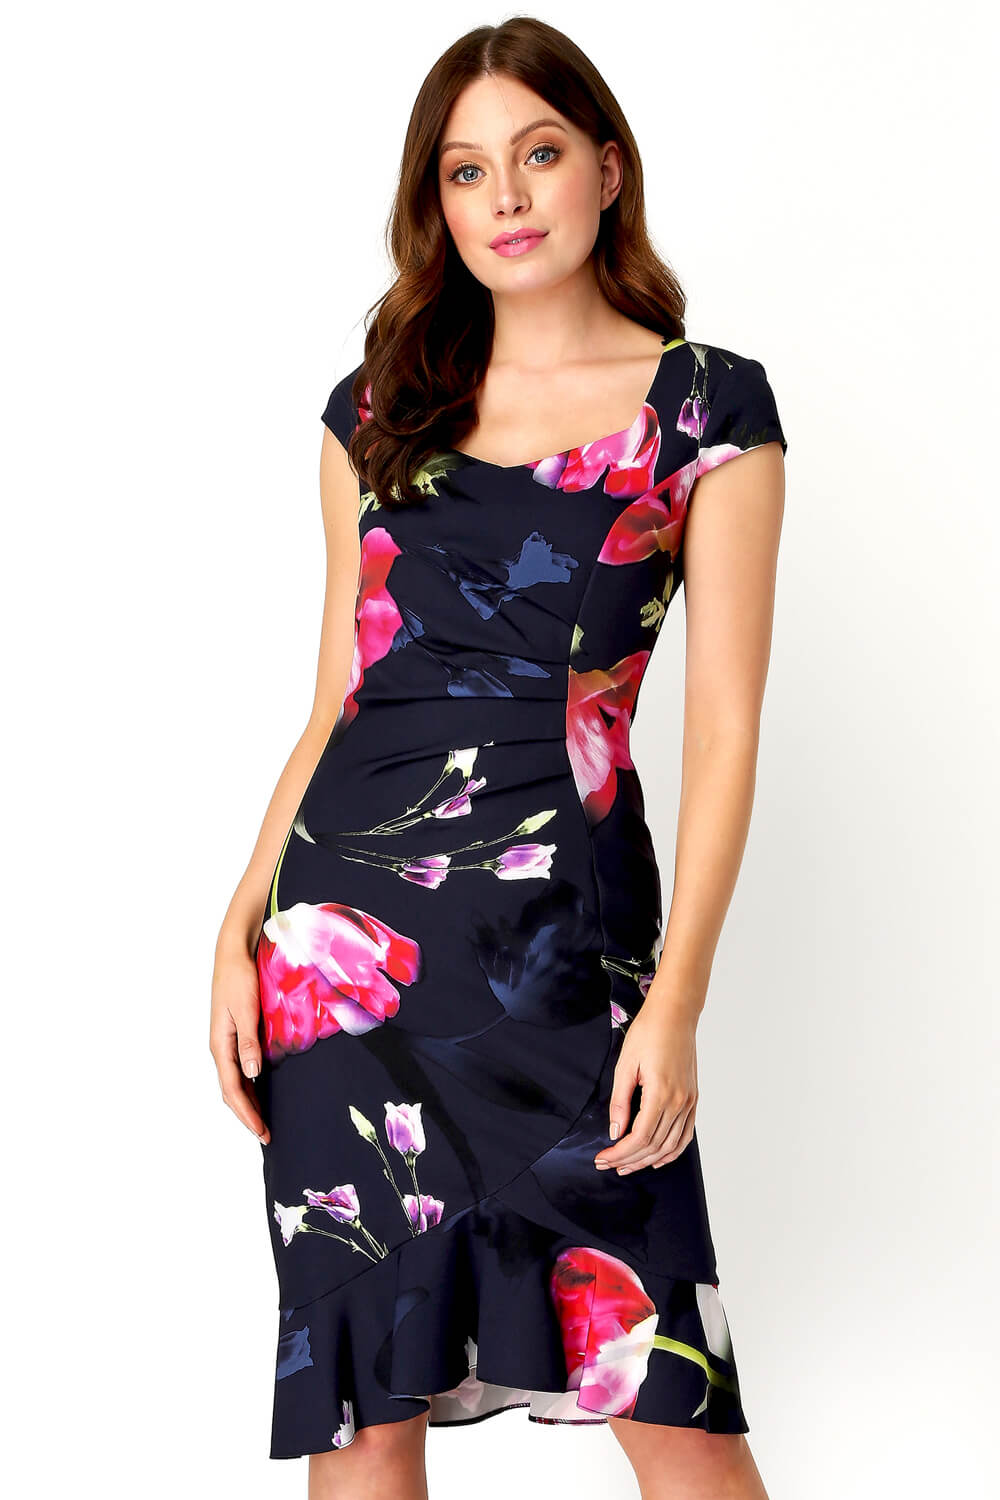 Roman-Originals-Women-Floral-Print-Midi-Ruffle-Hem-Dress thumbnail 14